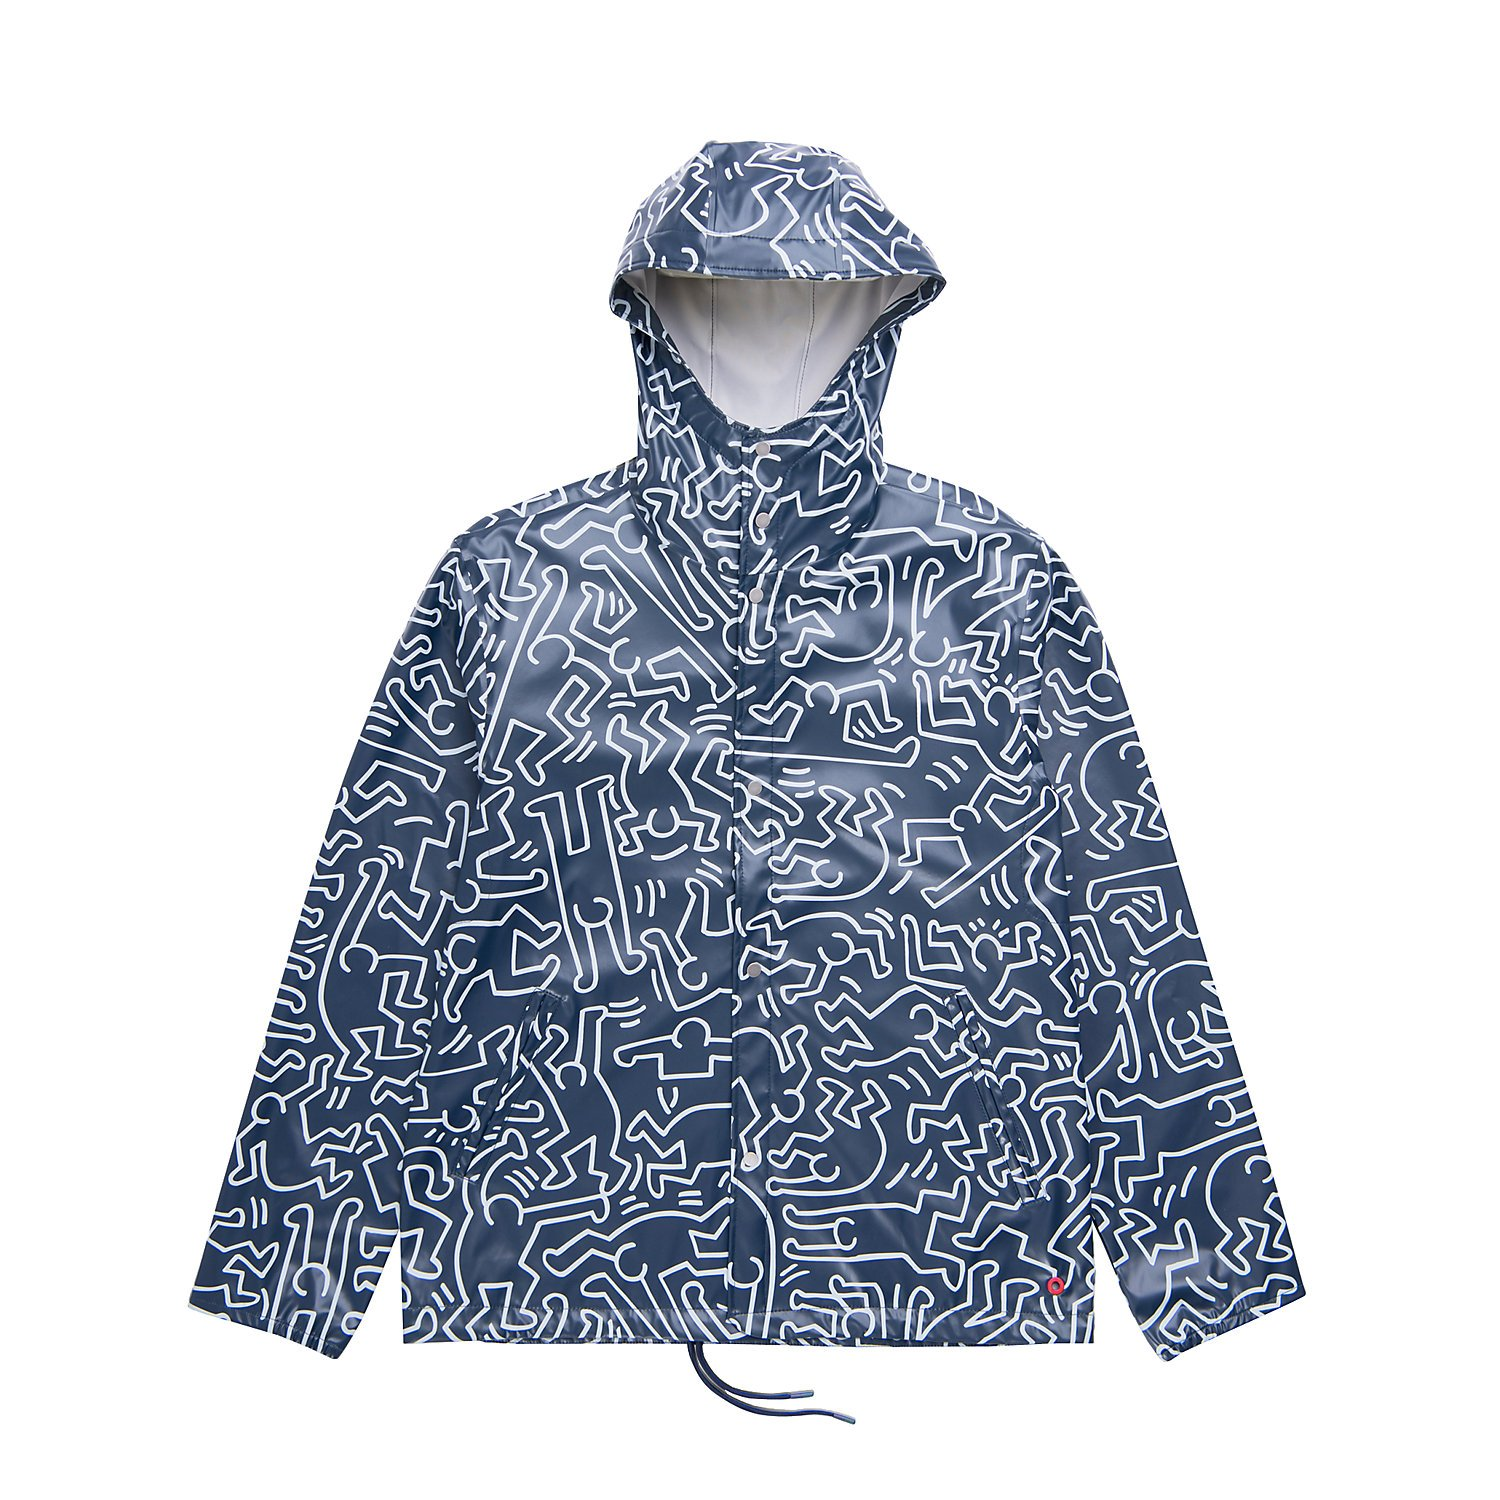 a34e6888b64 Herschel Supply Co. Men s Forecast Hooded Waterproof Coaches Jacket at  Amazon Men s Clothing store